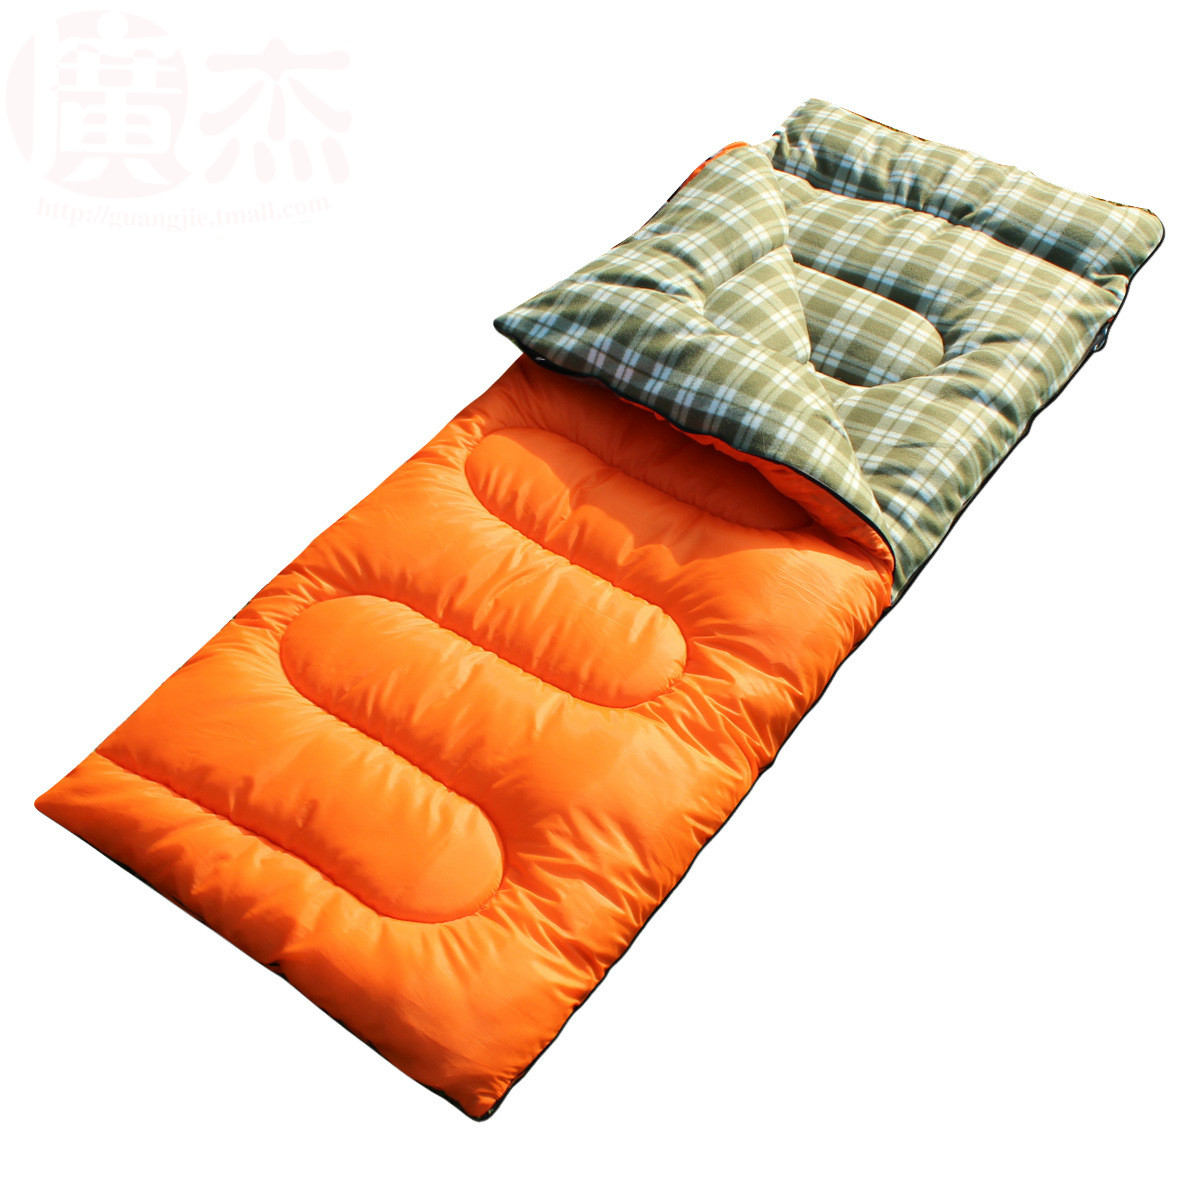 Outdoor camping sleeping bag spring summer autumn three season envelope sleeping bag can be splicing adult sleeping bag цены